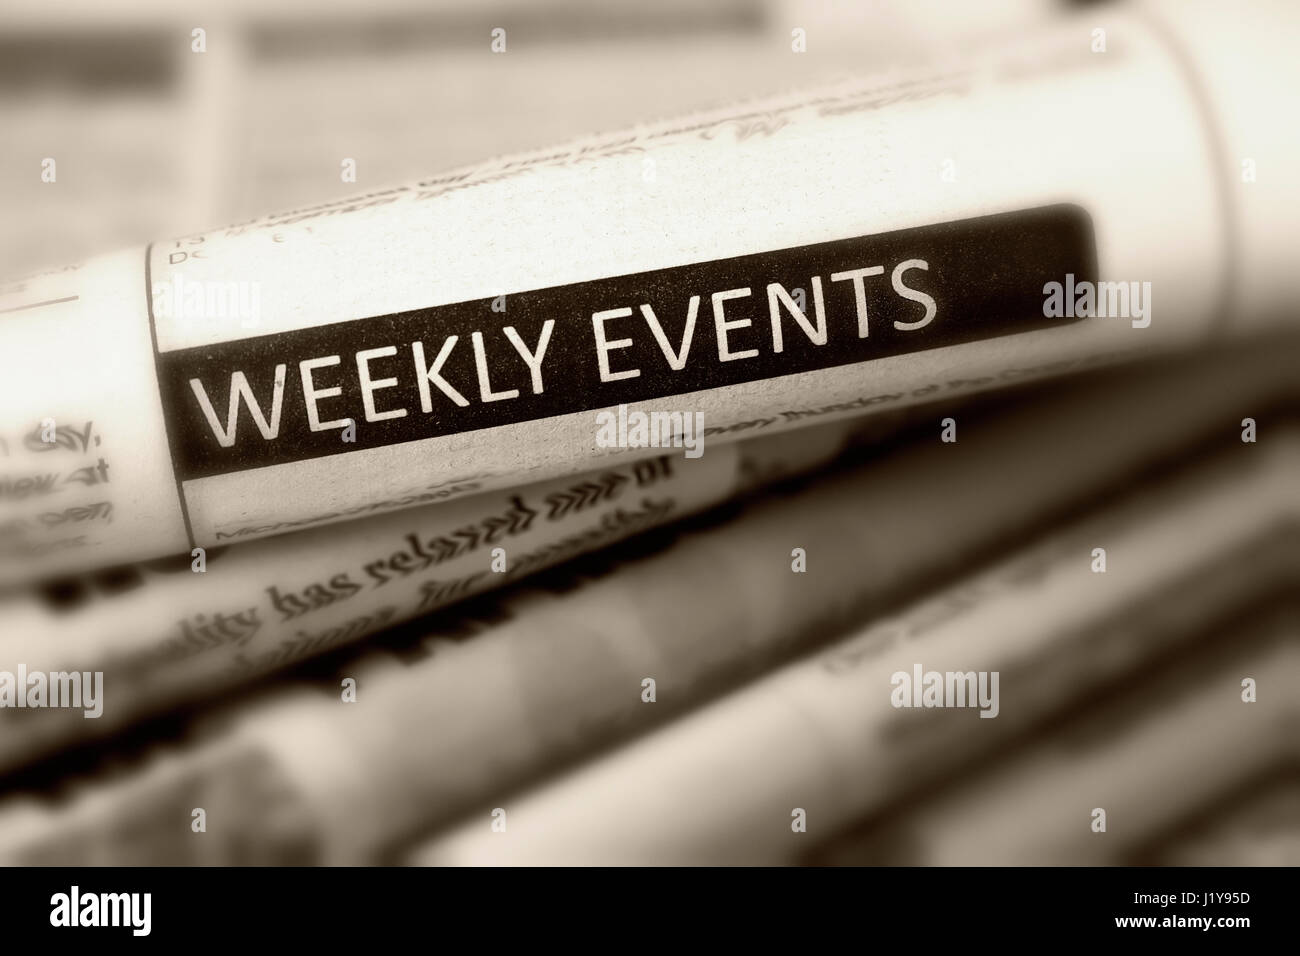 Headline Weekly events of one of newspaper in the pile of newspapers. Black and white. - Stock Image